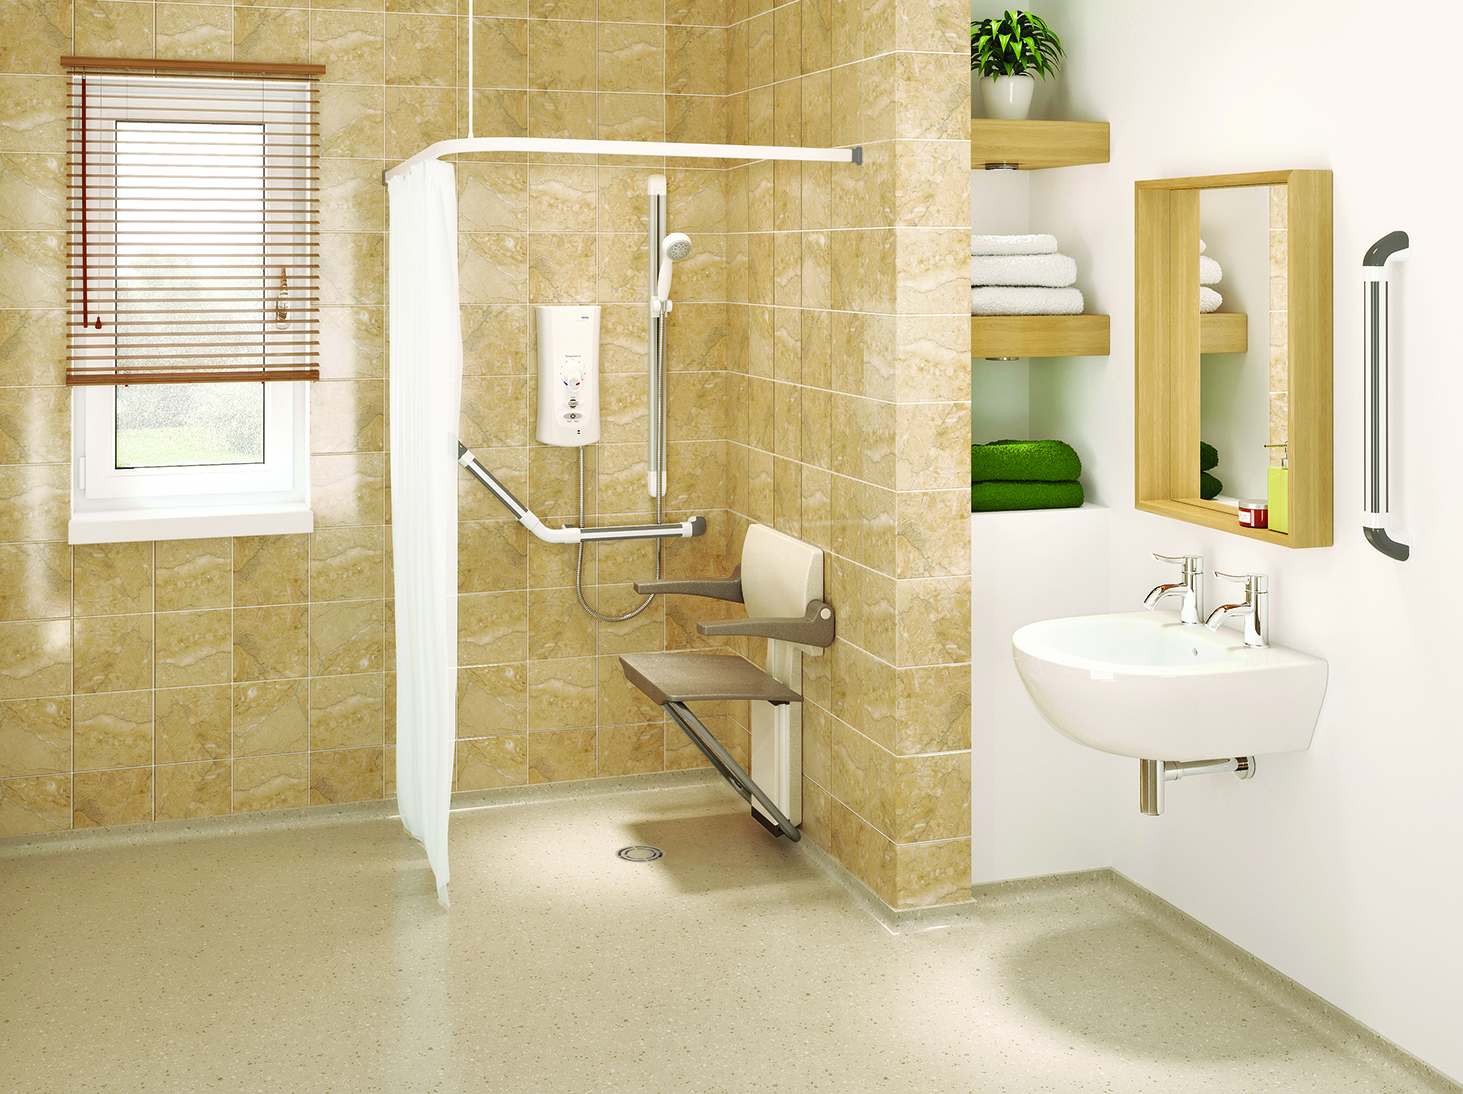 Easy access walk in shower room